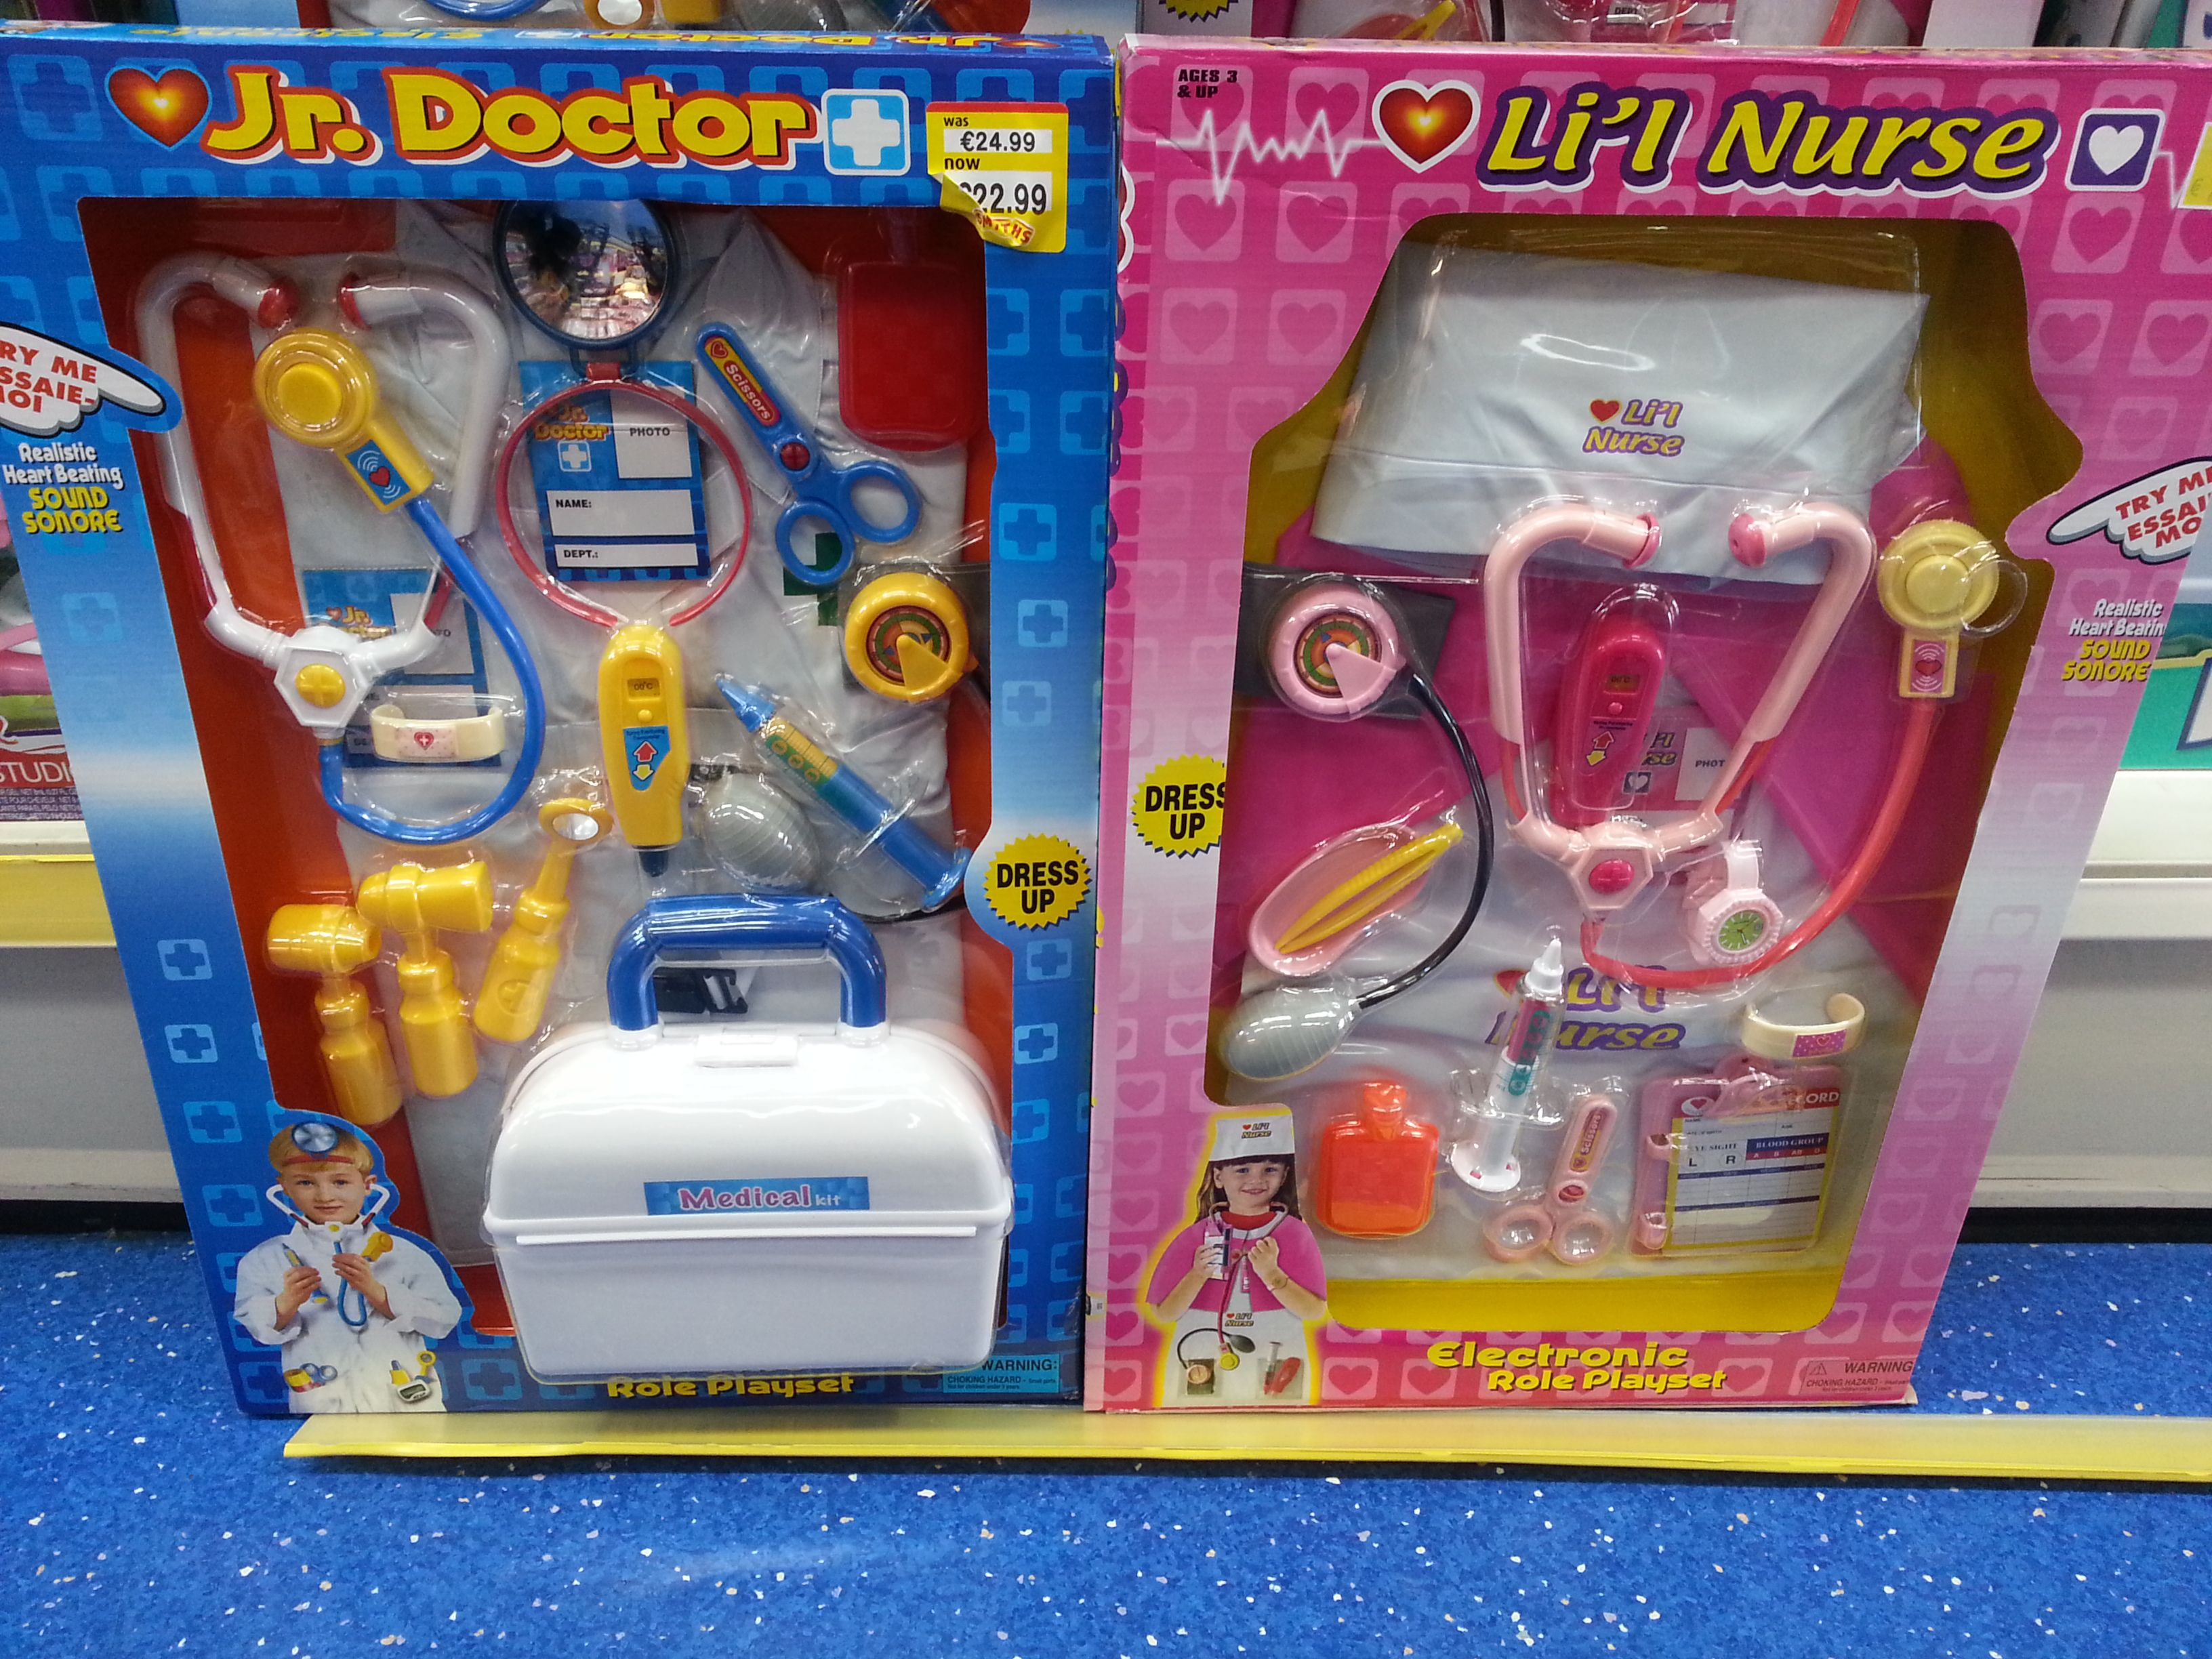 Different Toy Firms Continue To Make Children S Play Dress Up But A Reoccurring Decision Always Brings Up Debate This Topic Revolves Aro Bilder Leksaker Visa